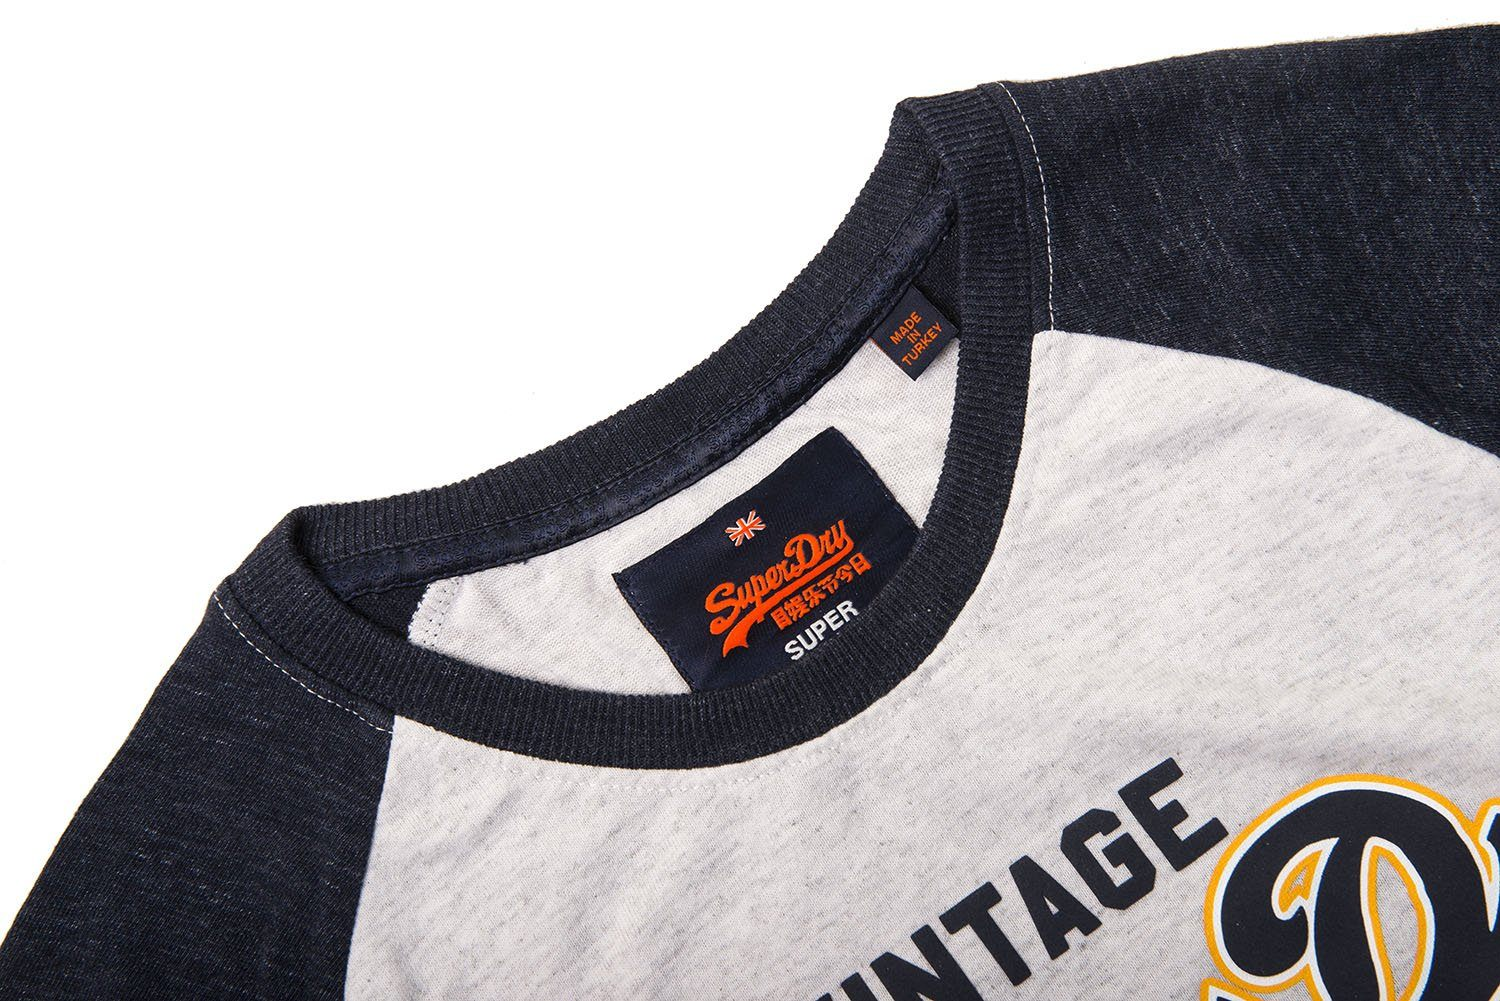 Superdry Premium Goods Raglan Tee in Silver / Blue